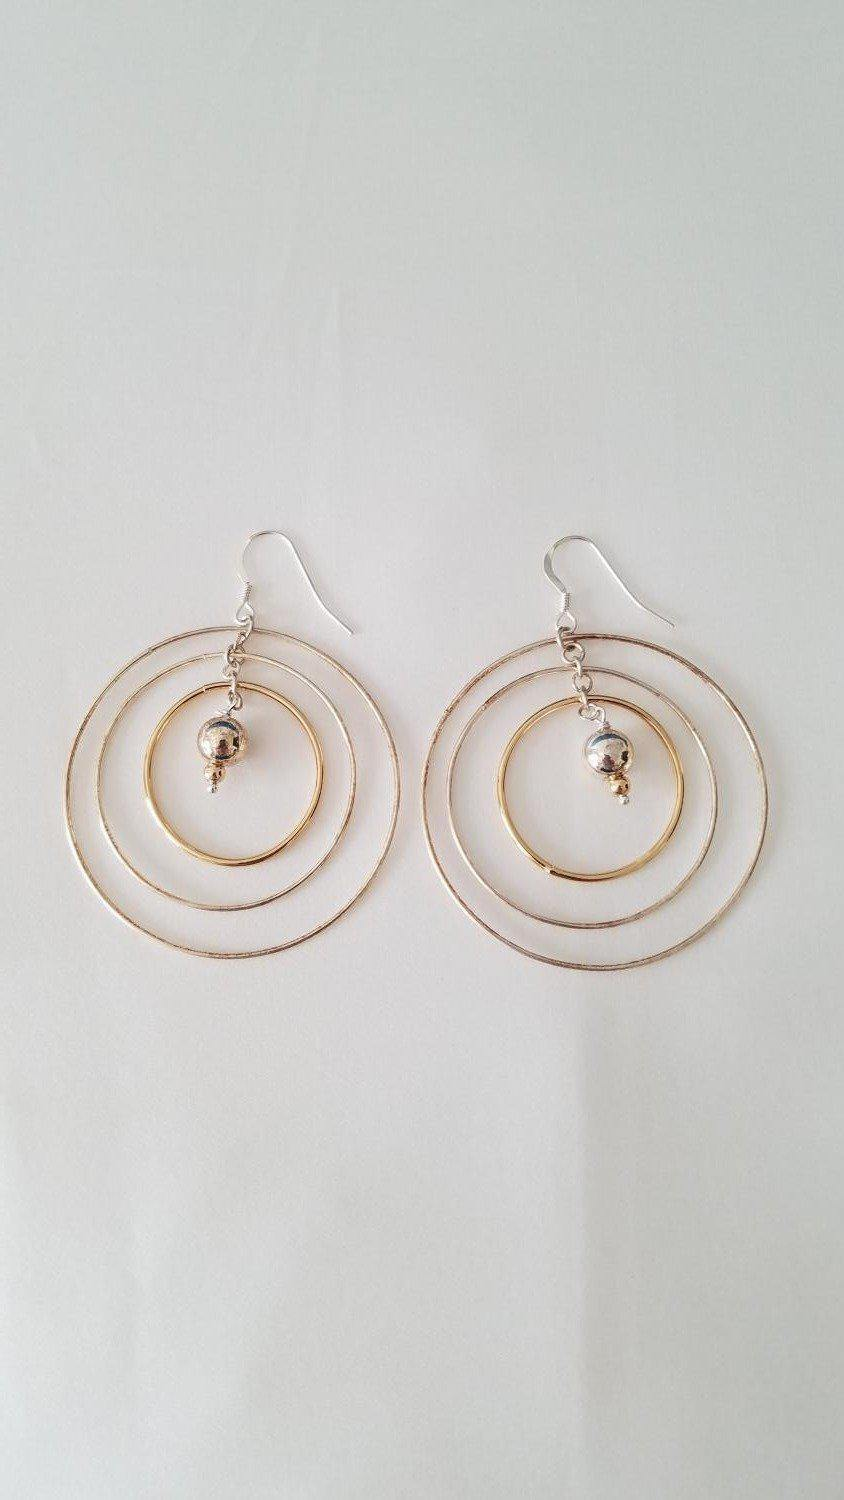 Silver and Gold Plated Triple Loop Earrings-Jewelry-Maker & Moss